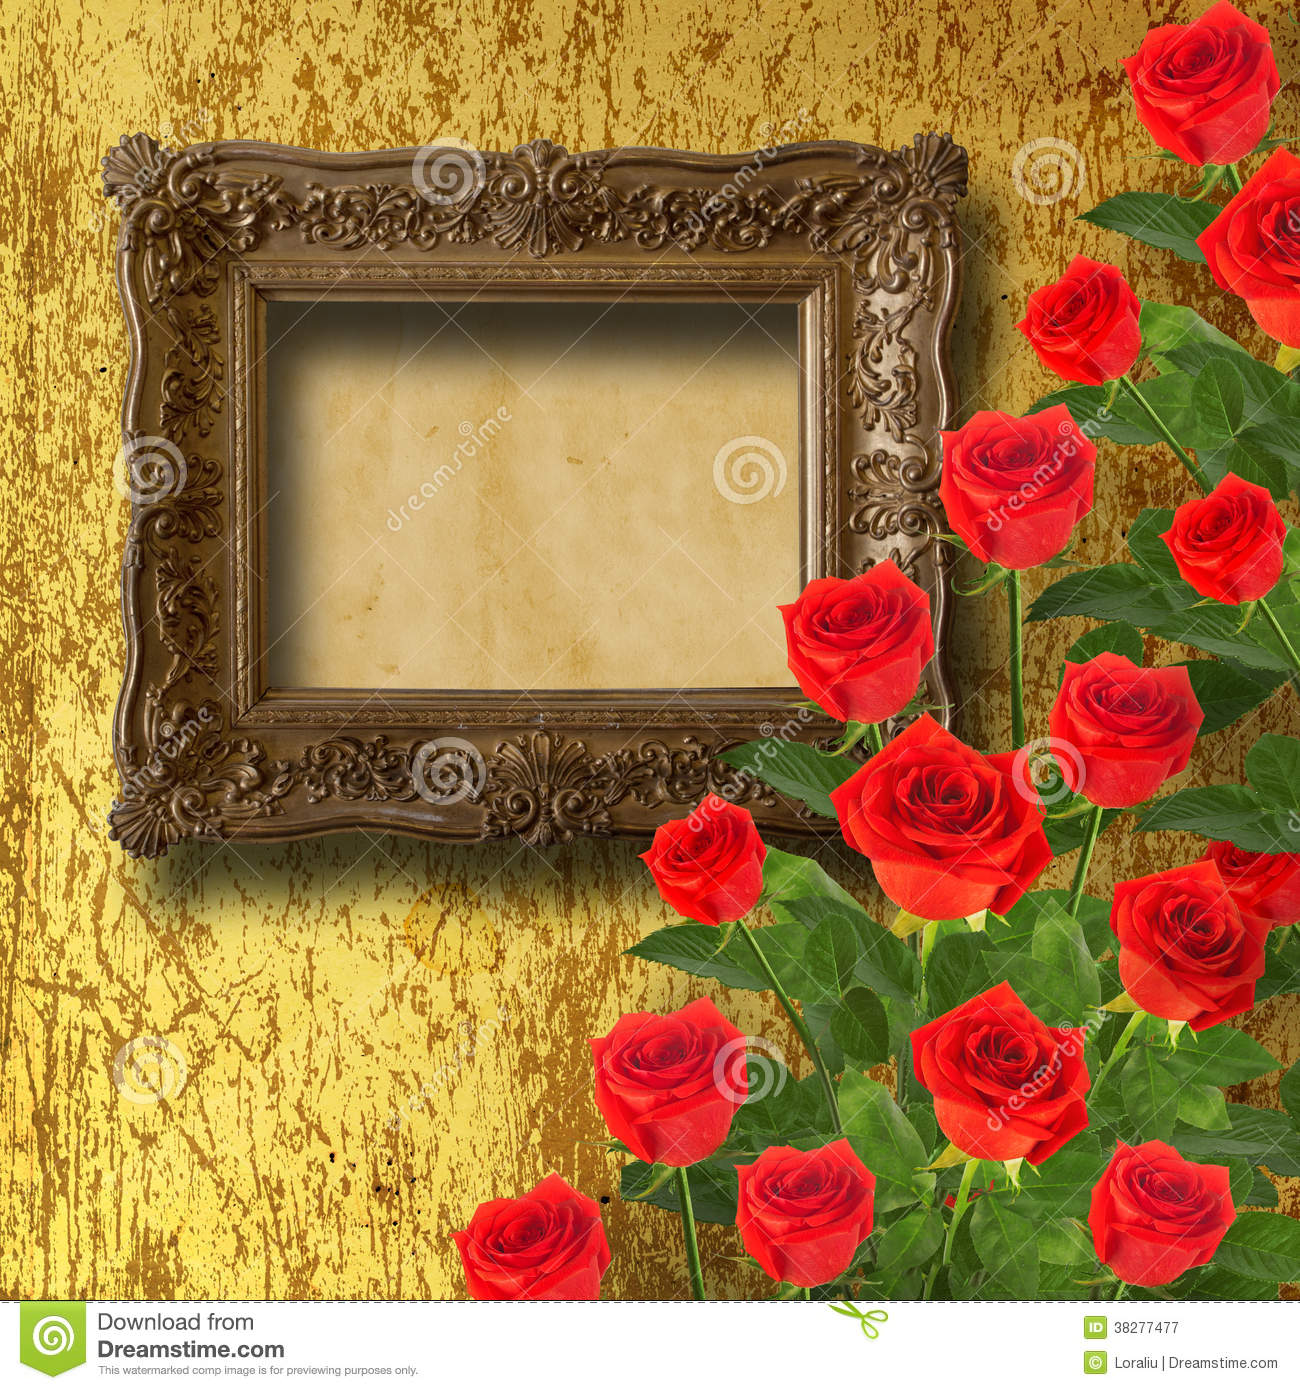 33 492 Frame Red Rose Photos Free Royalty Free Stock Photos From Dreamstime